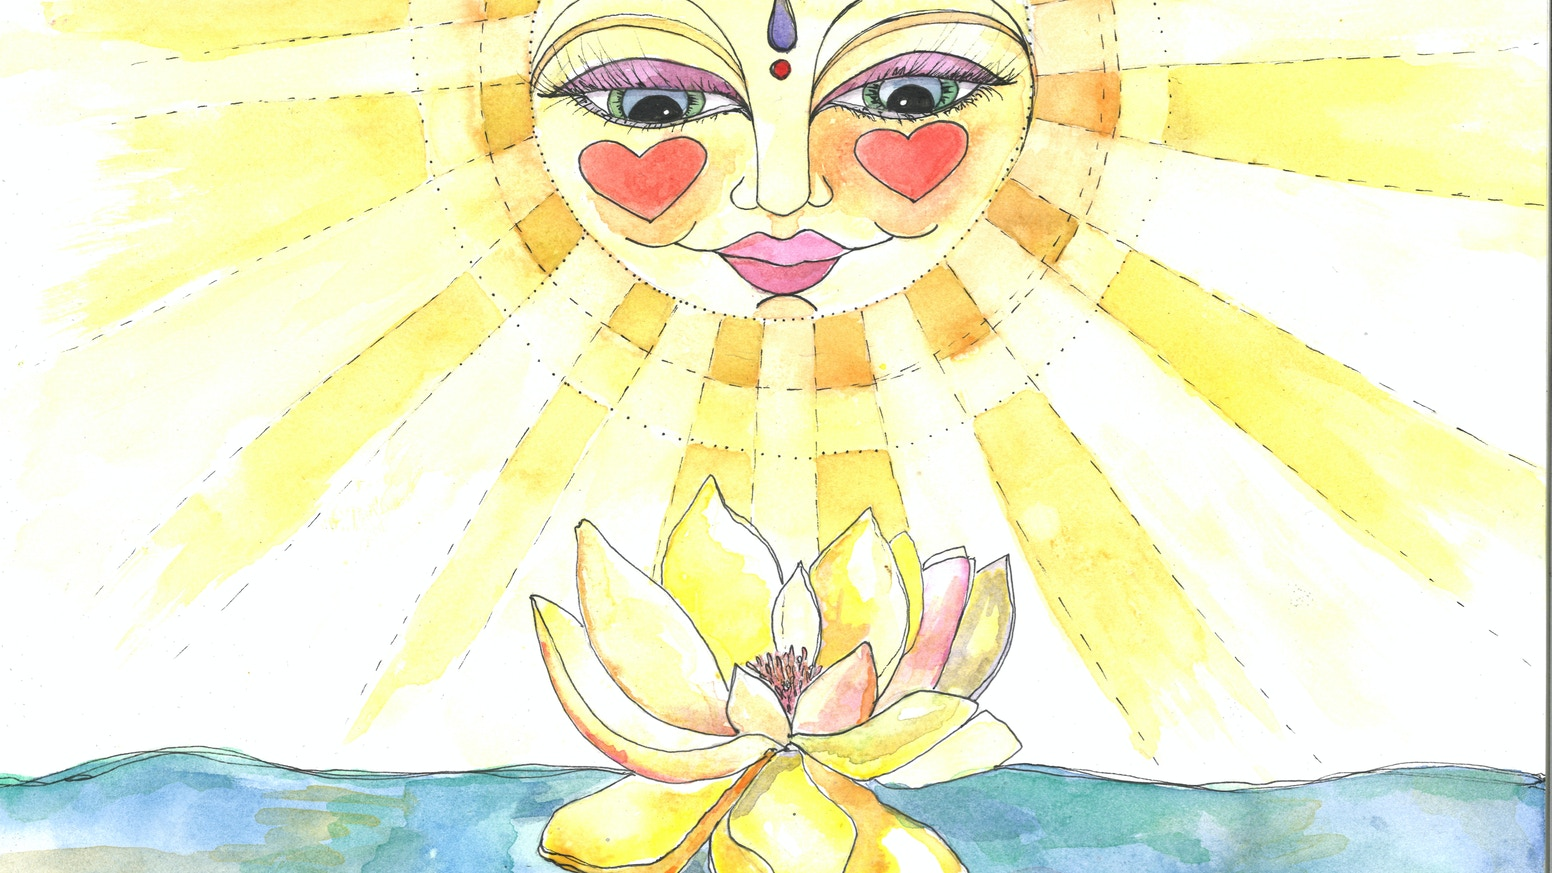 Yellow lotus flower by jen myzel kickstarter yellow lotus flower a childrens sing a long book about rising up from the muck izmirmasajfo